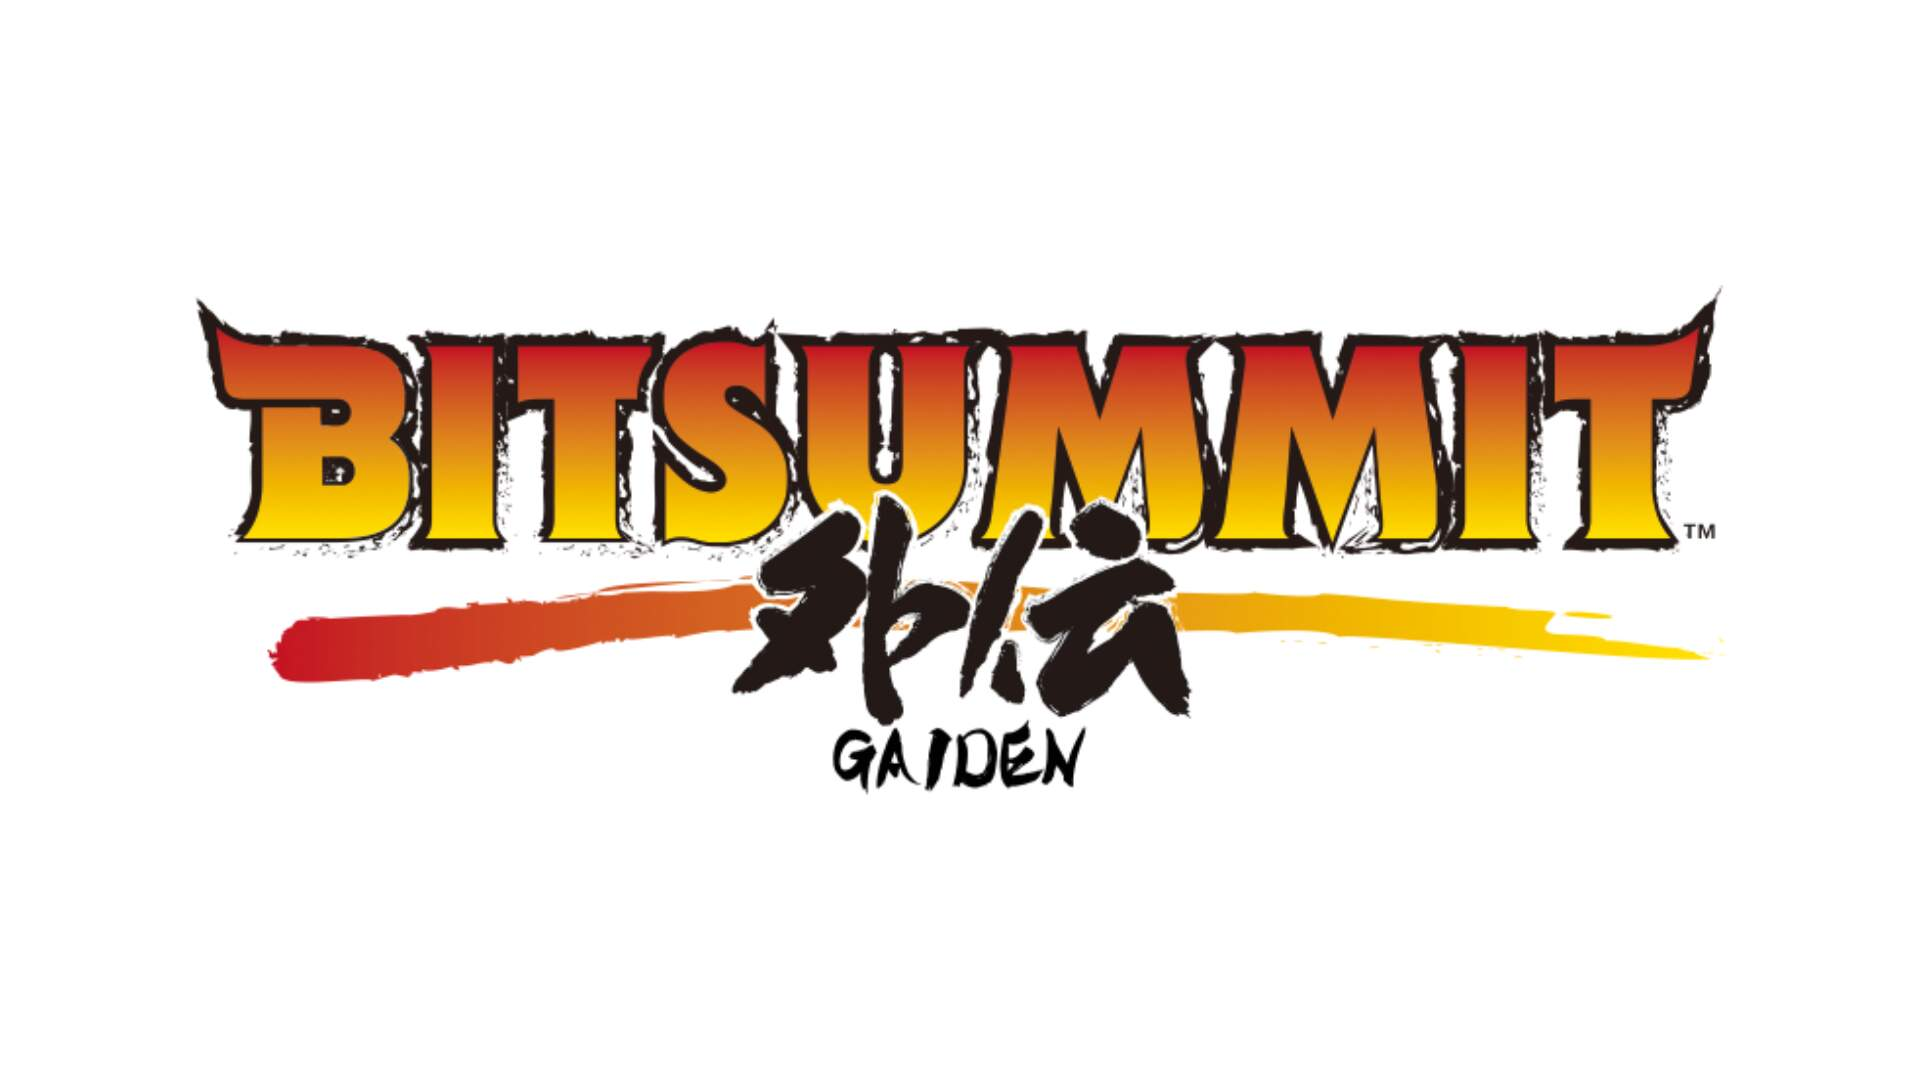 Join USgamer This Weekend As We Stream During BitSummit Gaiden